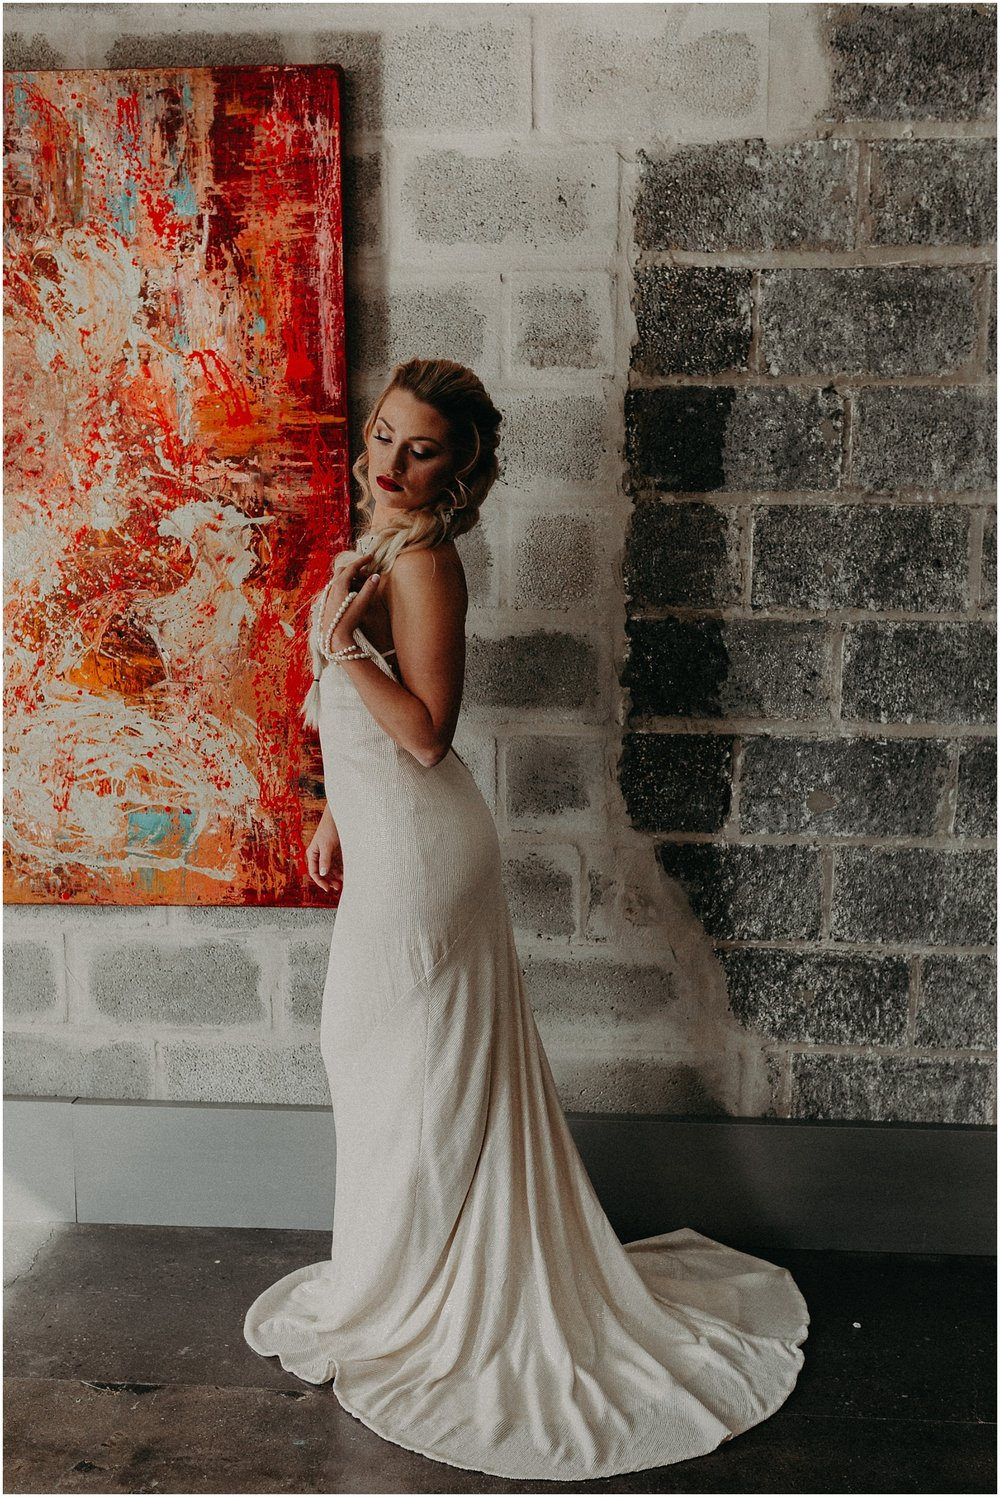 styled shoot-bridal portraits-portraits-bride-rock and roll-industrial-urban-wedding-inspiration-nj-new jersey-nyc-new york city-art-diy wedding_0050.jpg